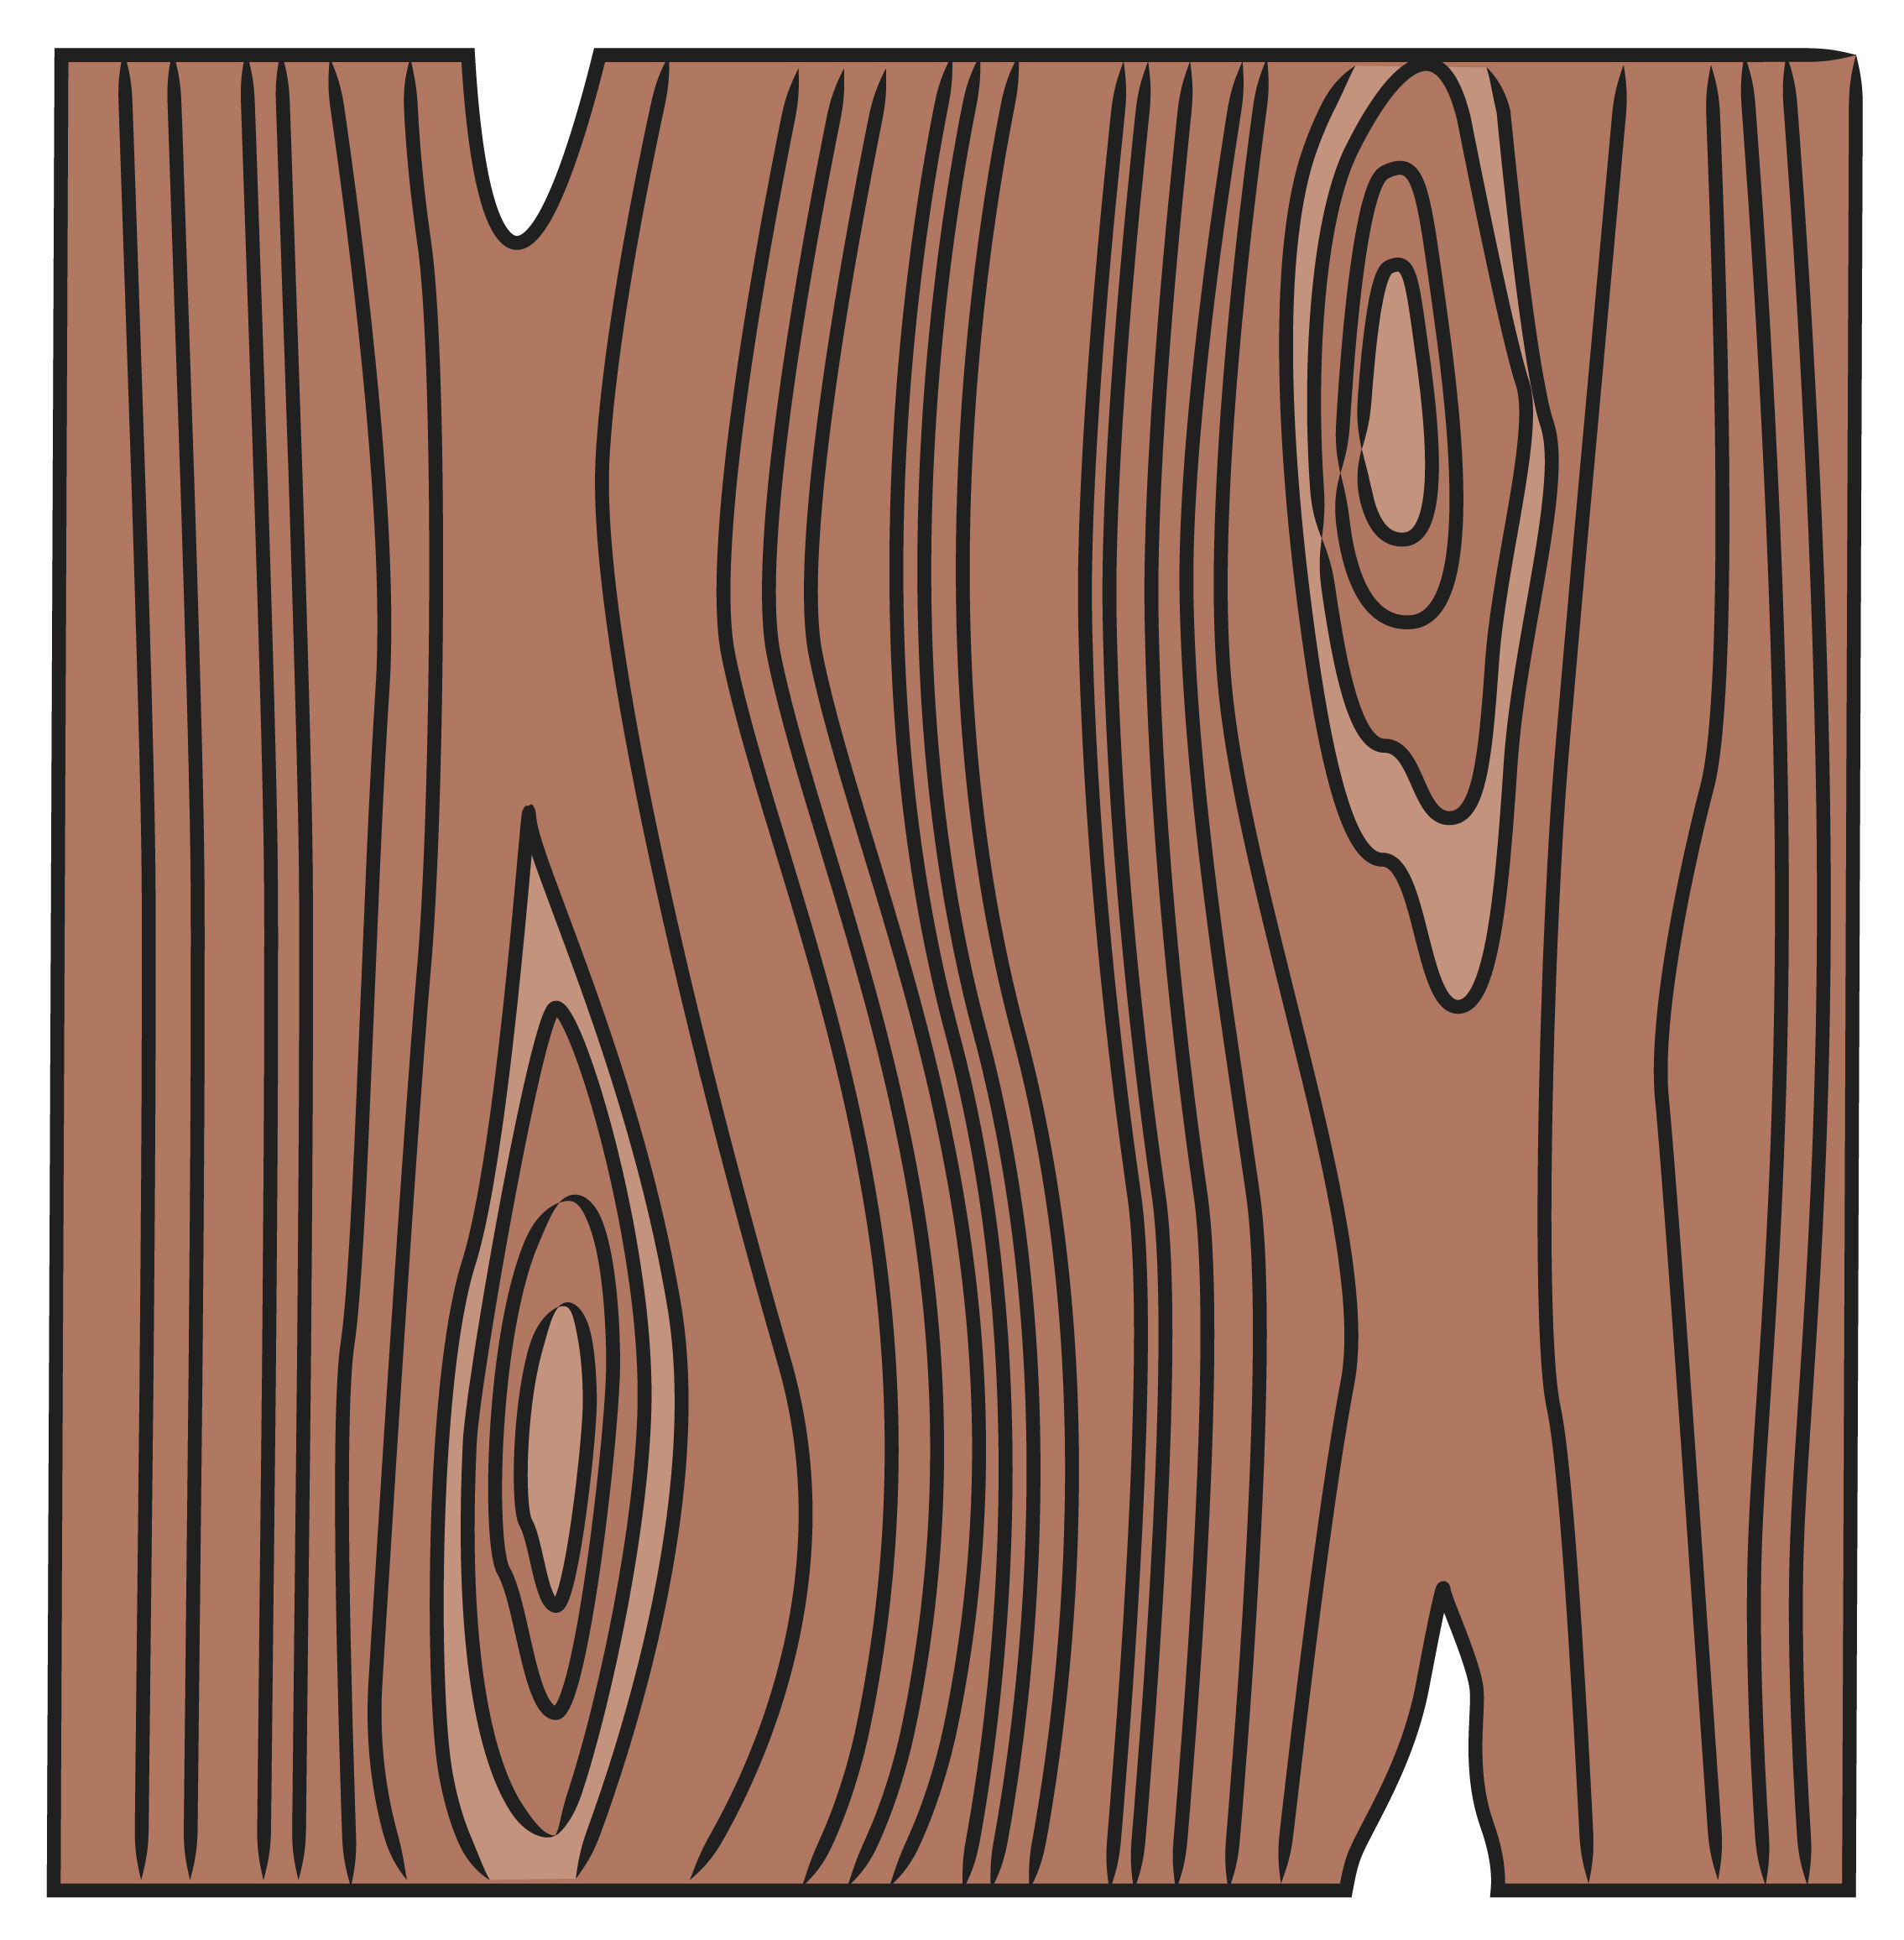 Drawn grain simple You to wood is a